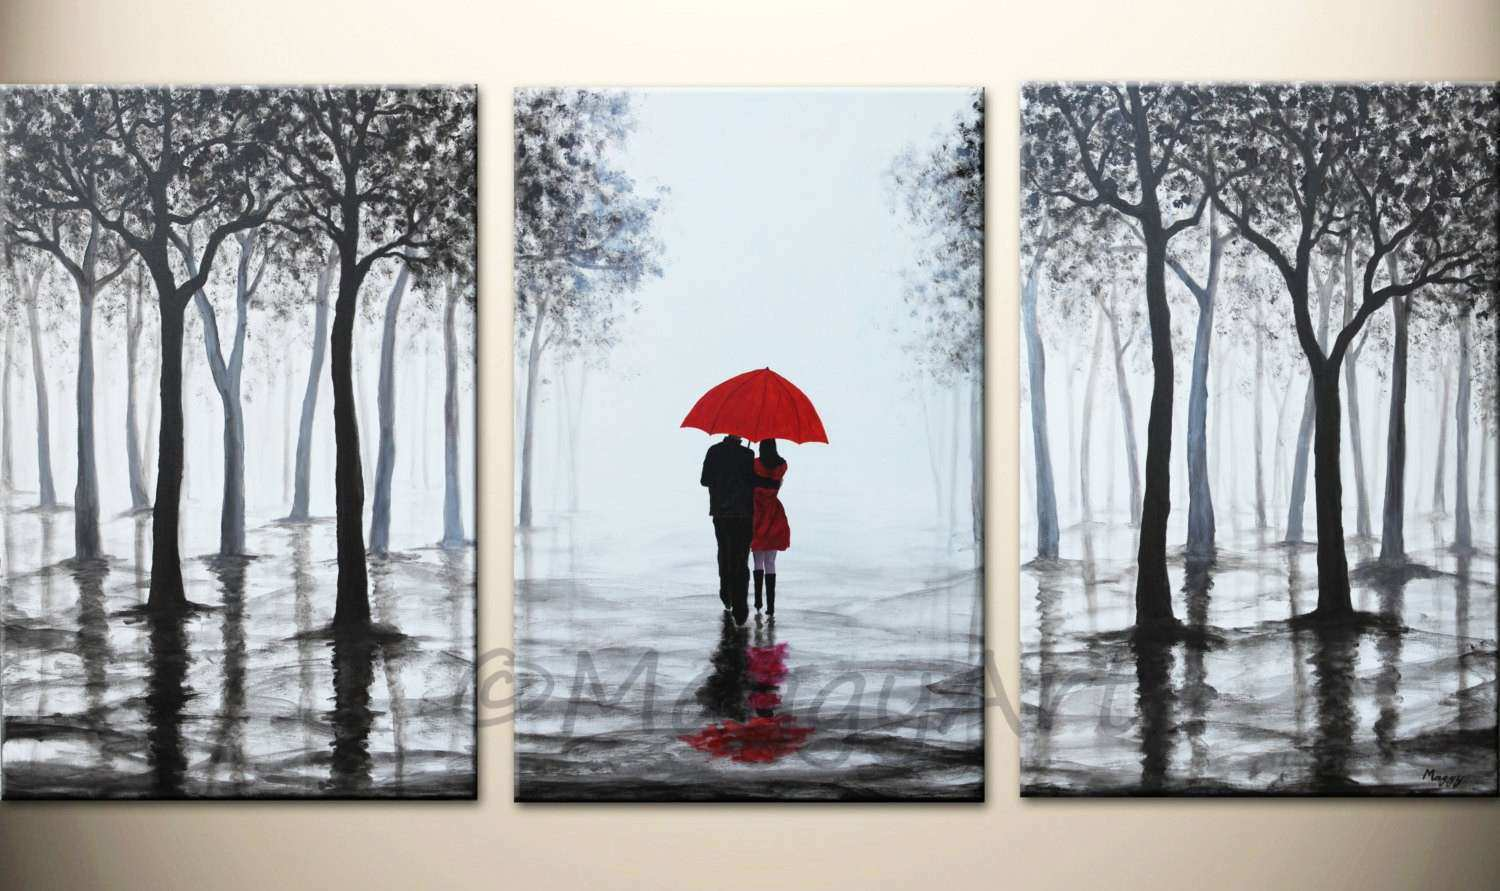 Wall Art Red Umbrella large abstract paintingoriginal